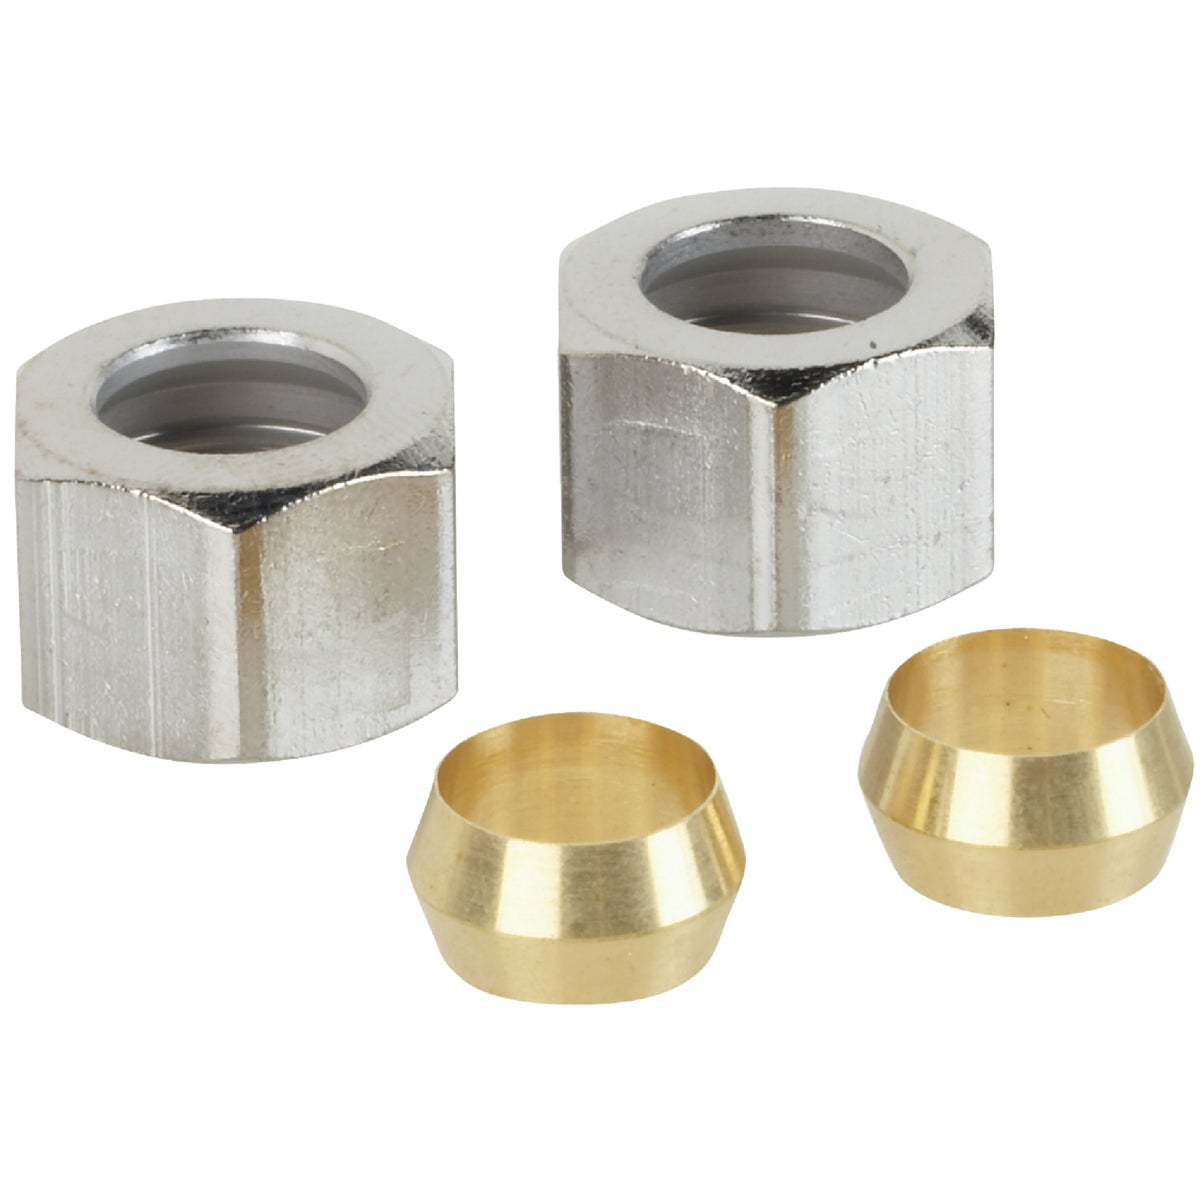 "3/8"" COMP NUT & RING"